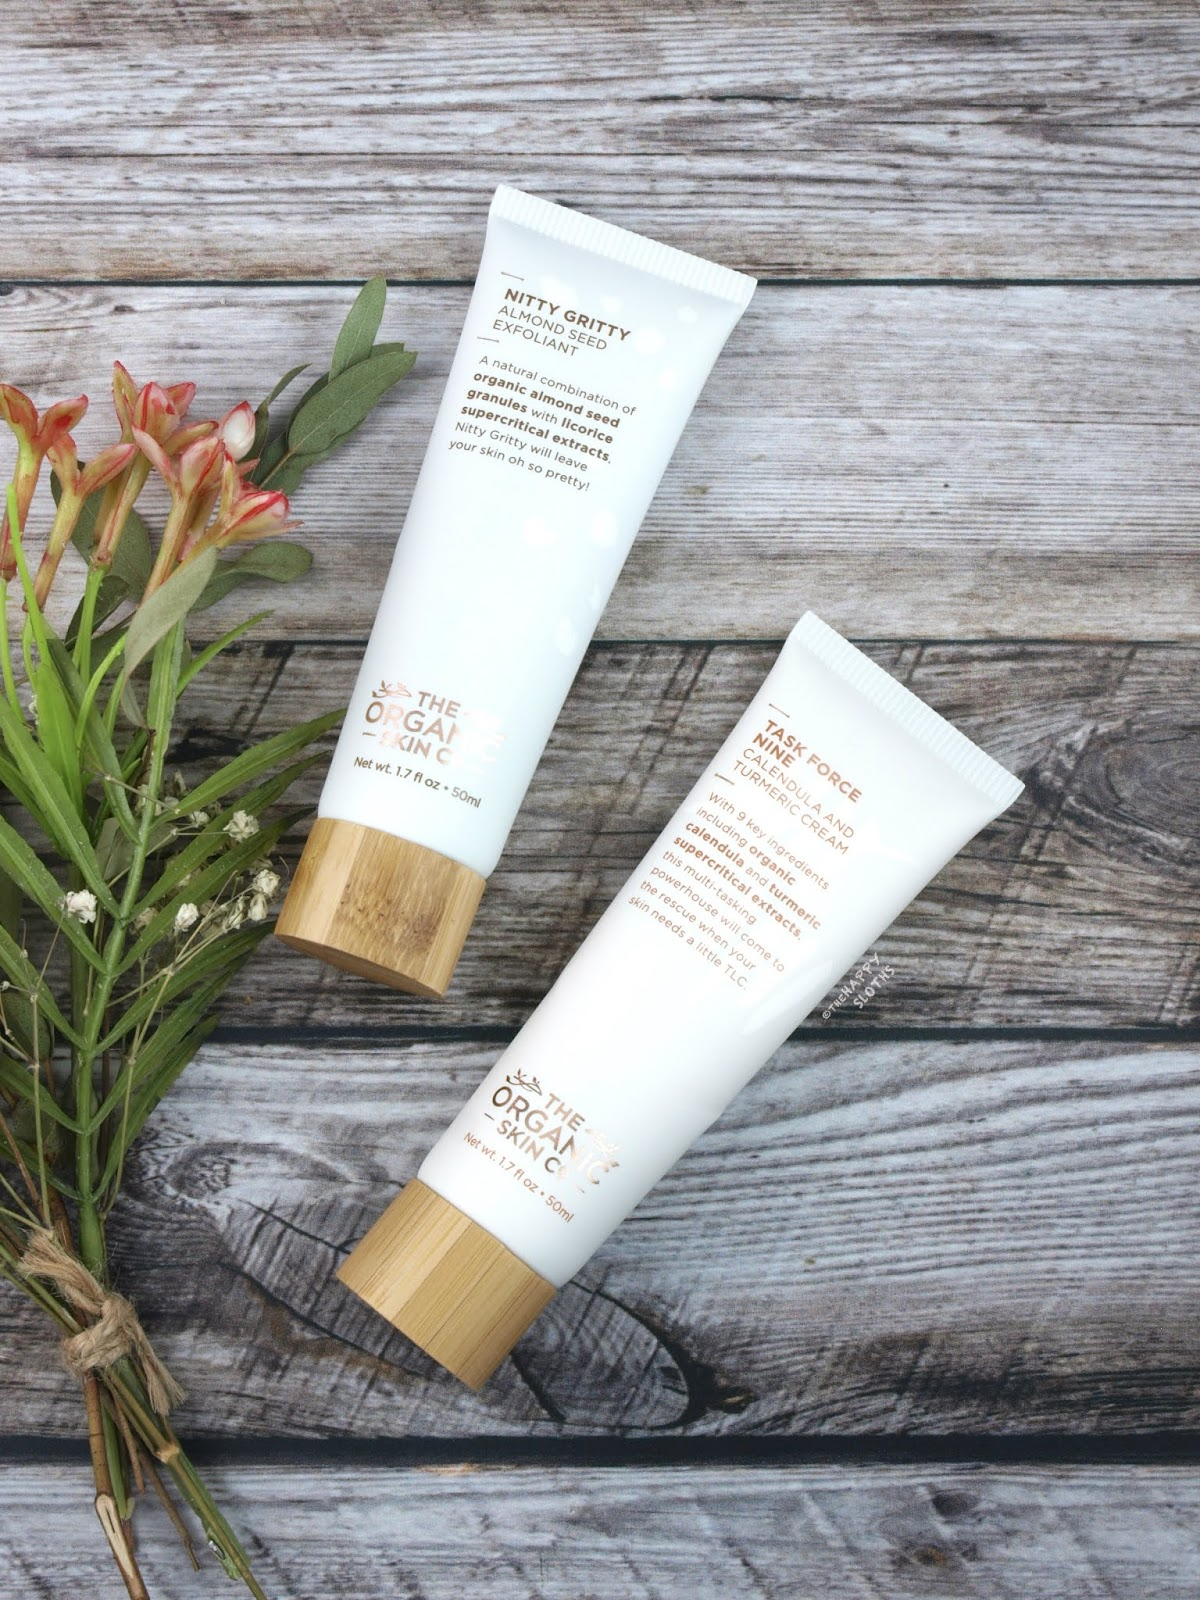 The Organic Skin Co | Nitty Gritty Almond Seed Exfoliant & Task Force Nine Calendula and Turmeric Cream: Review